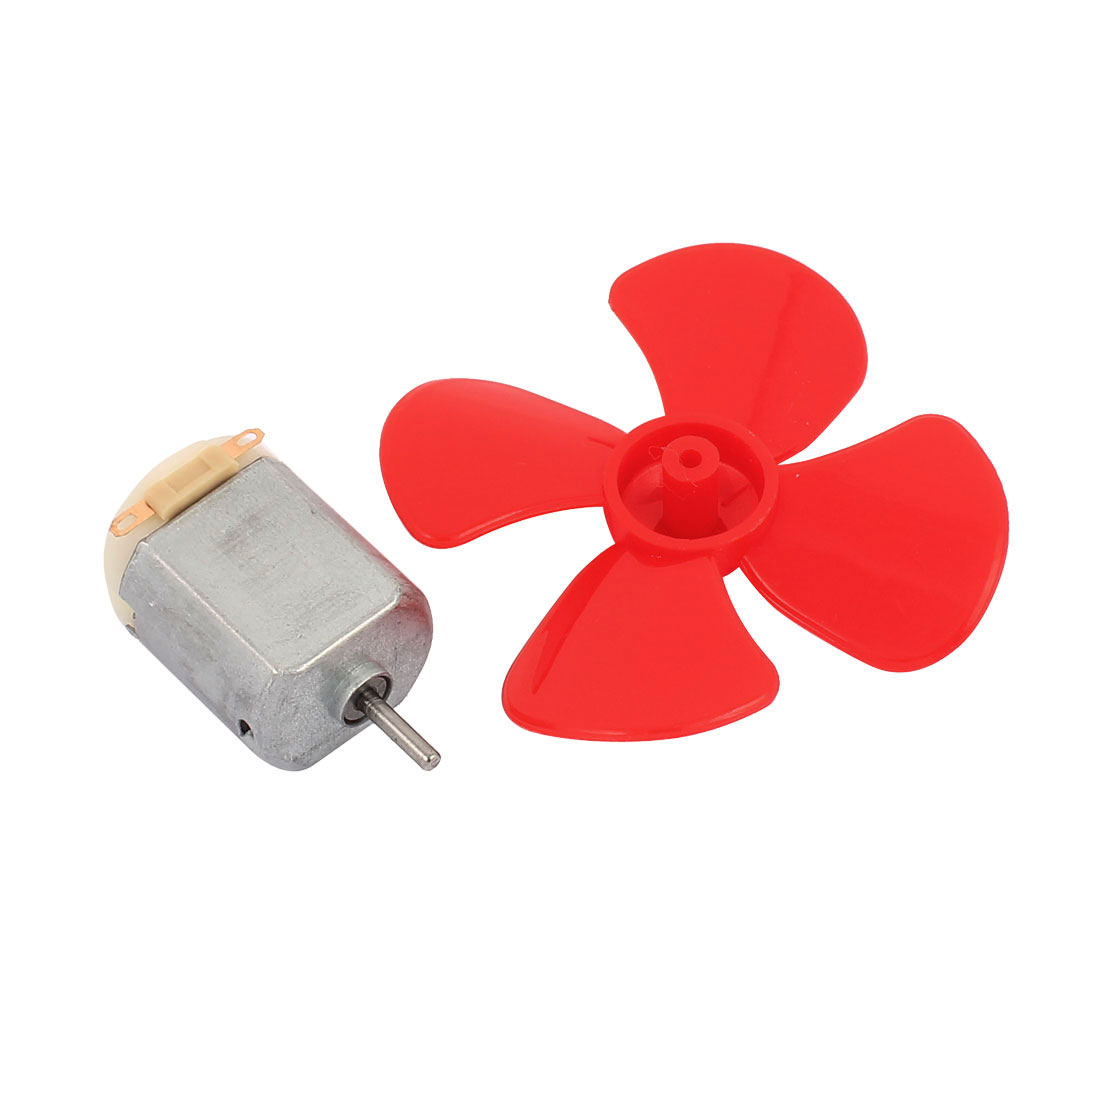 2Pcs DC12V 0.04A 14000RPM Aircraft Model Motor 4-vane Propeller 56mmx2mm - image 4 of 5